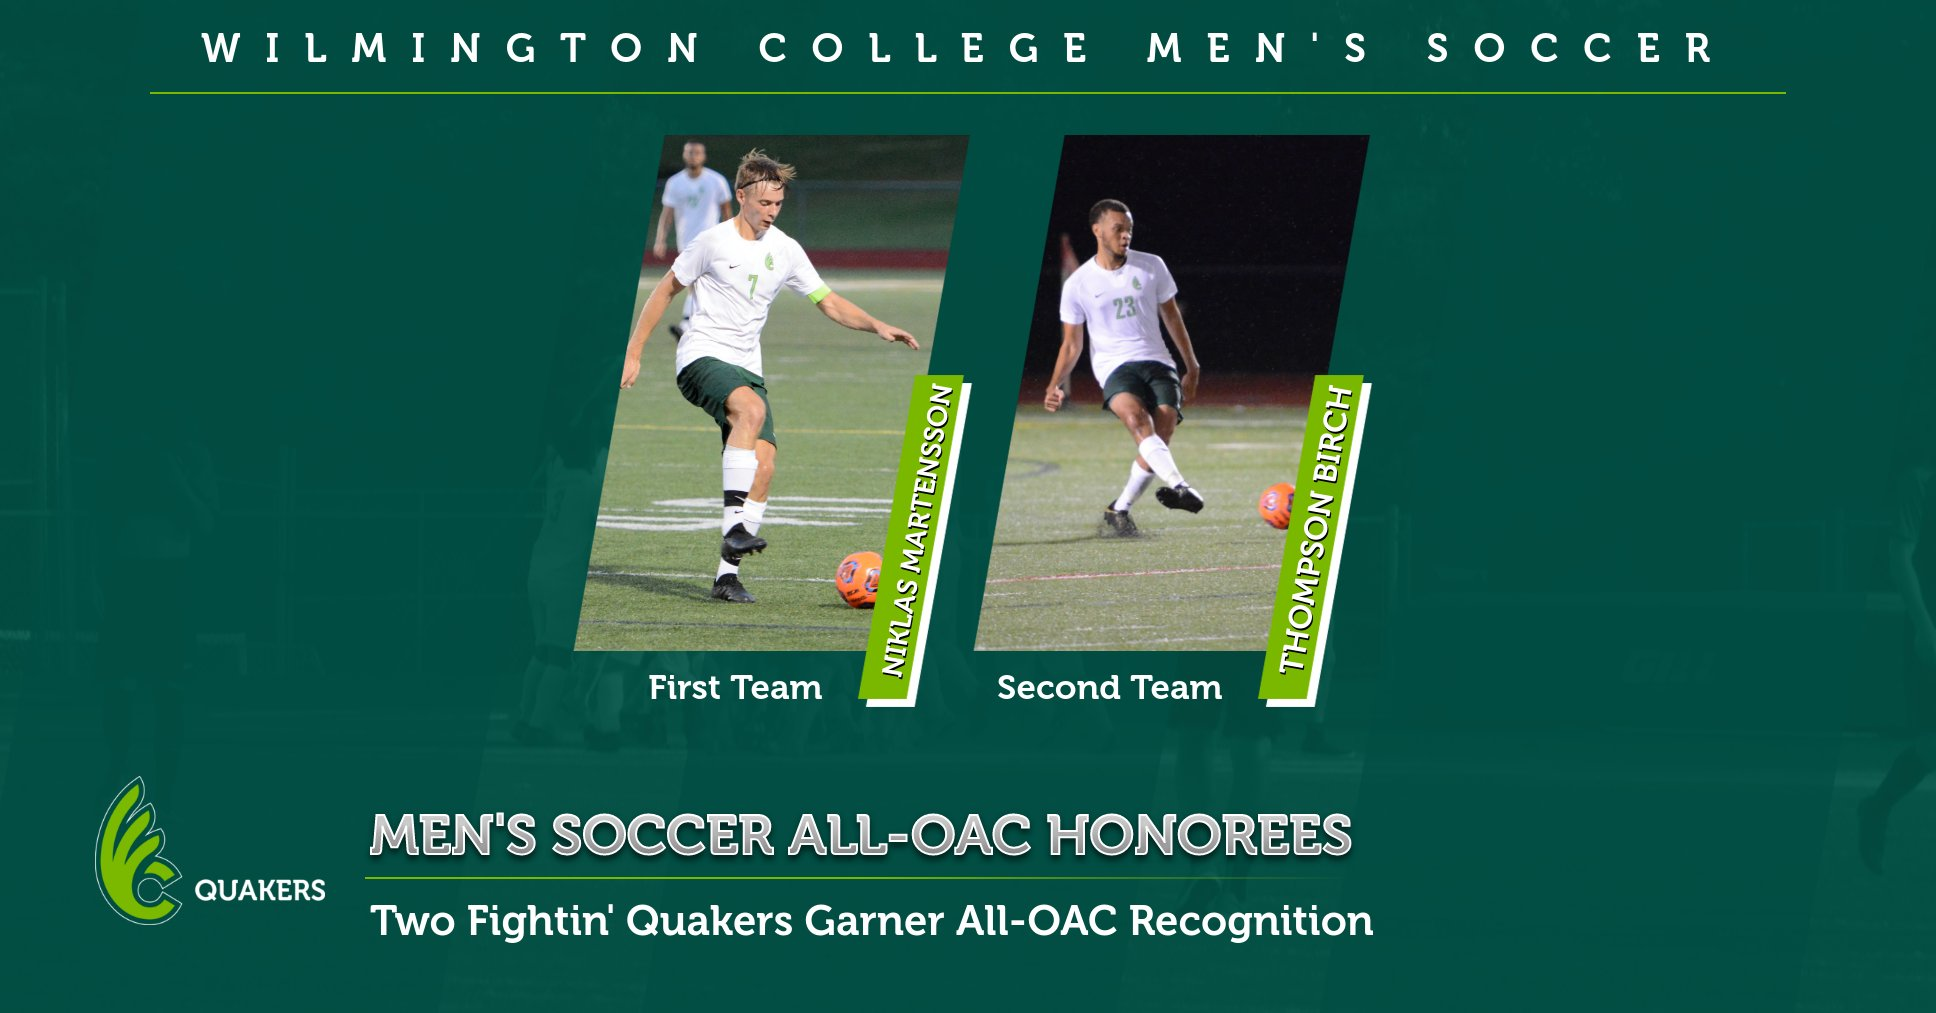 Martensson and Birch Earn All-OAC Honors for Men's Soccer